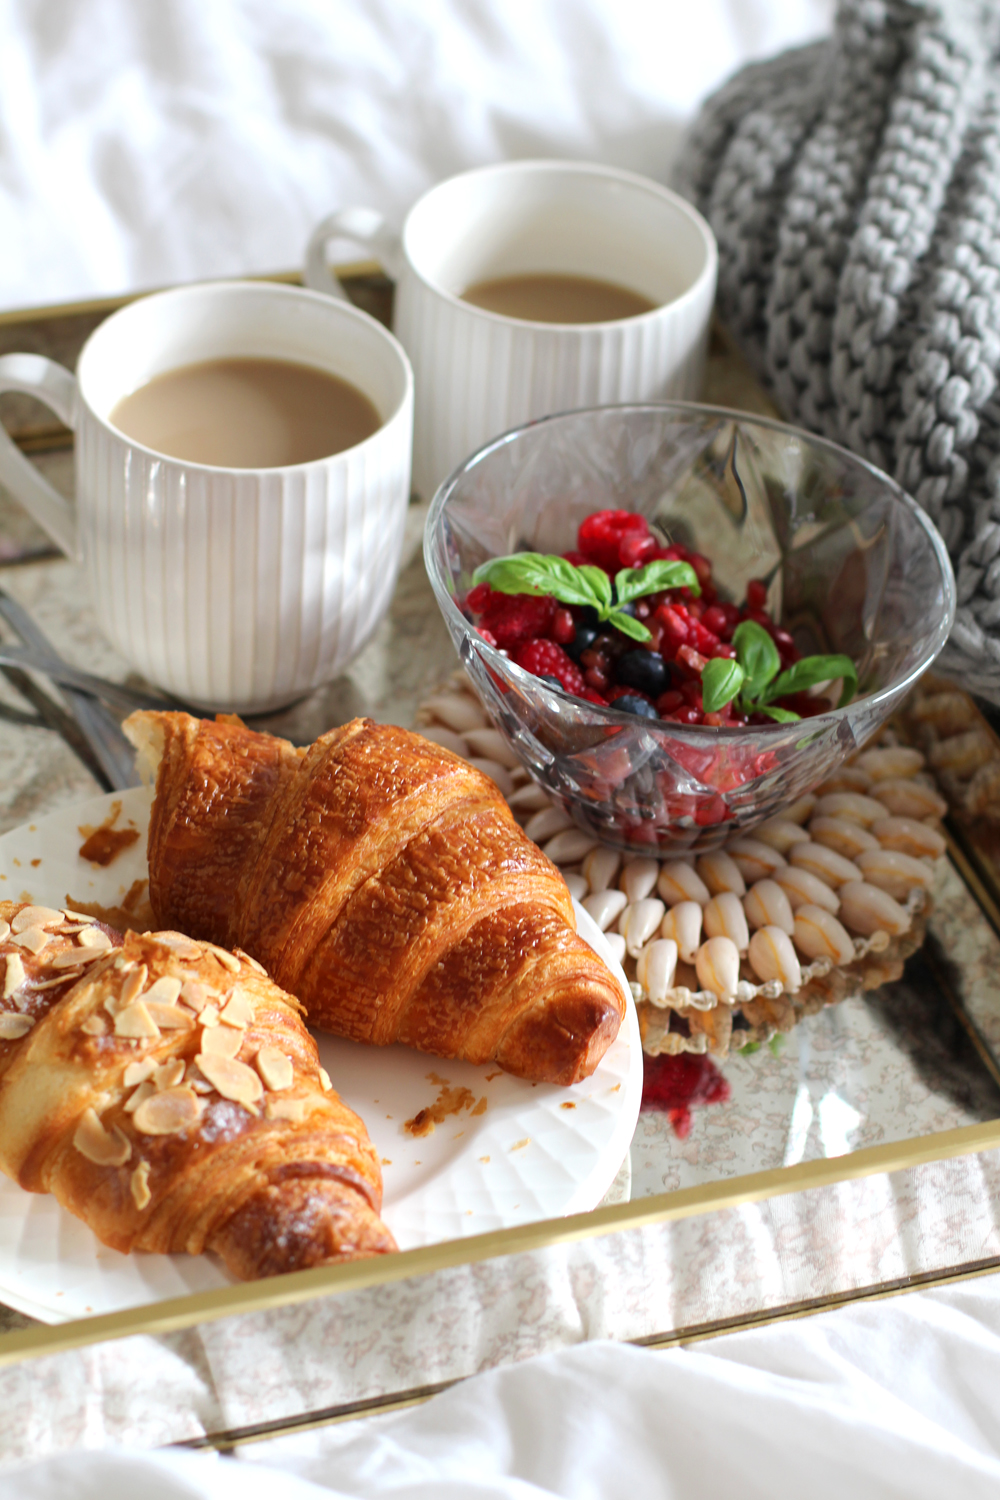 Breakfast in bed - UK lifestyle & interiors blog